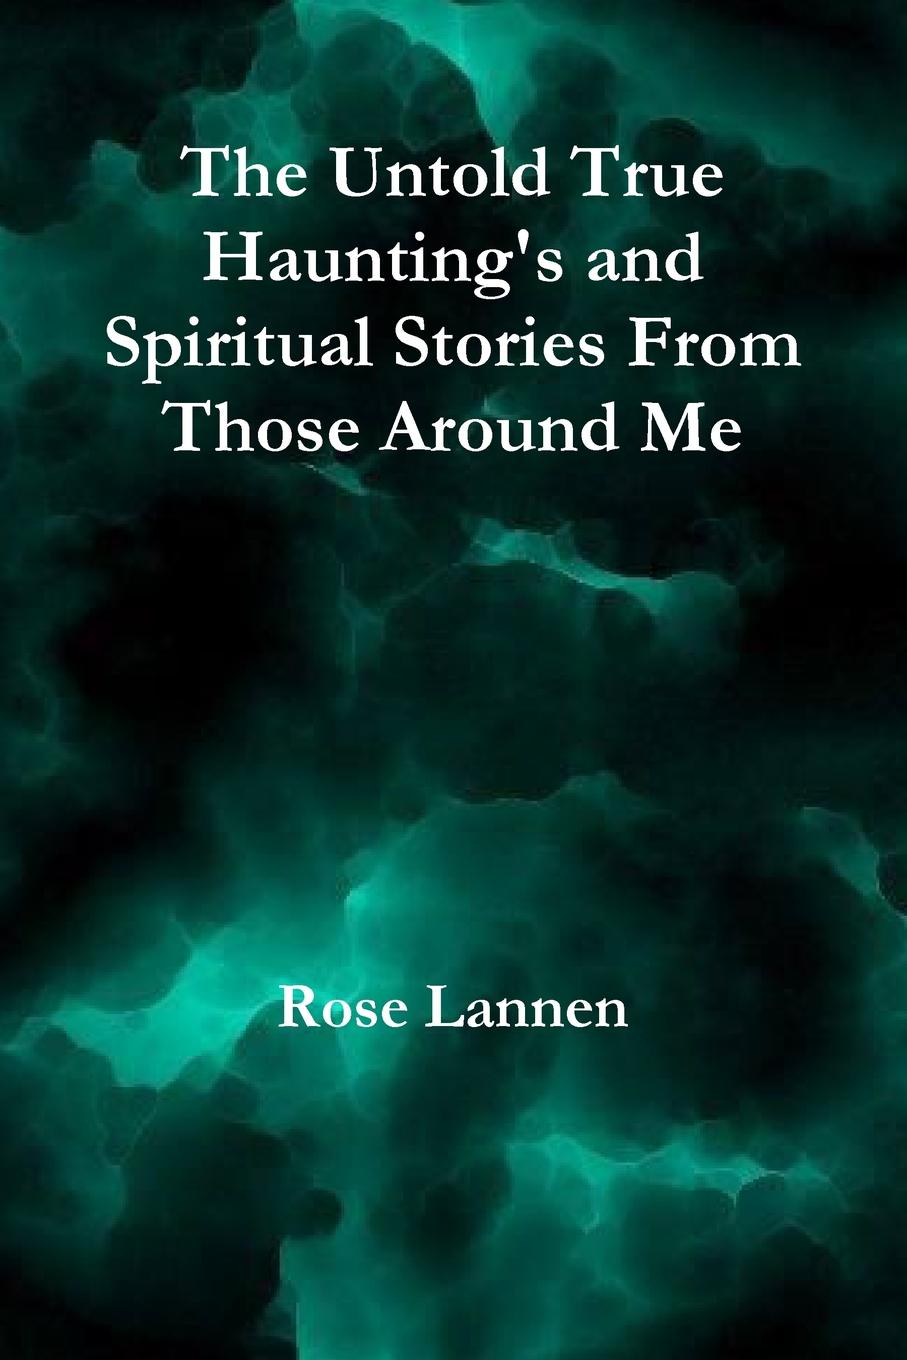 Rose Lannen The Untold True Haunting.s and Spiritual Stories From Those Around Me etta jones always in our hearts